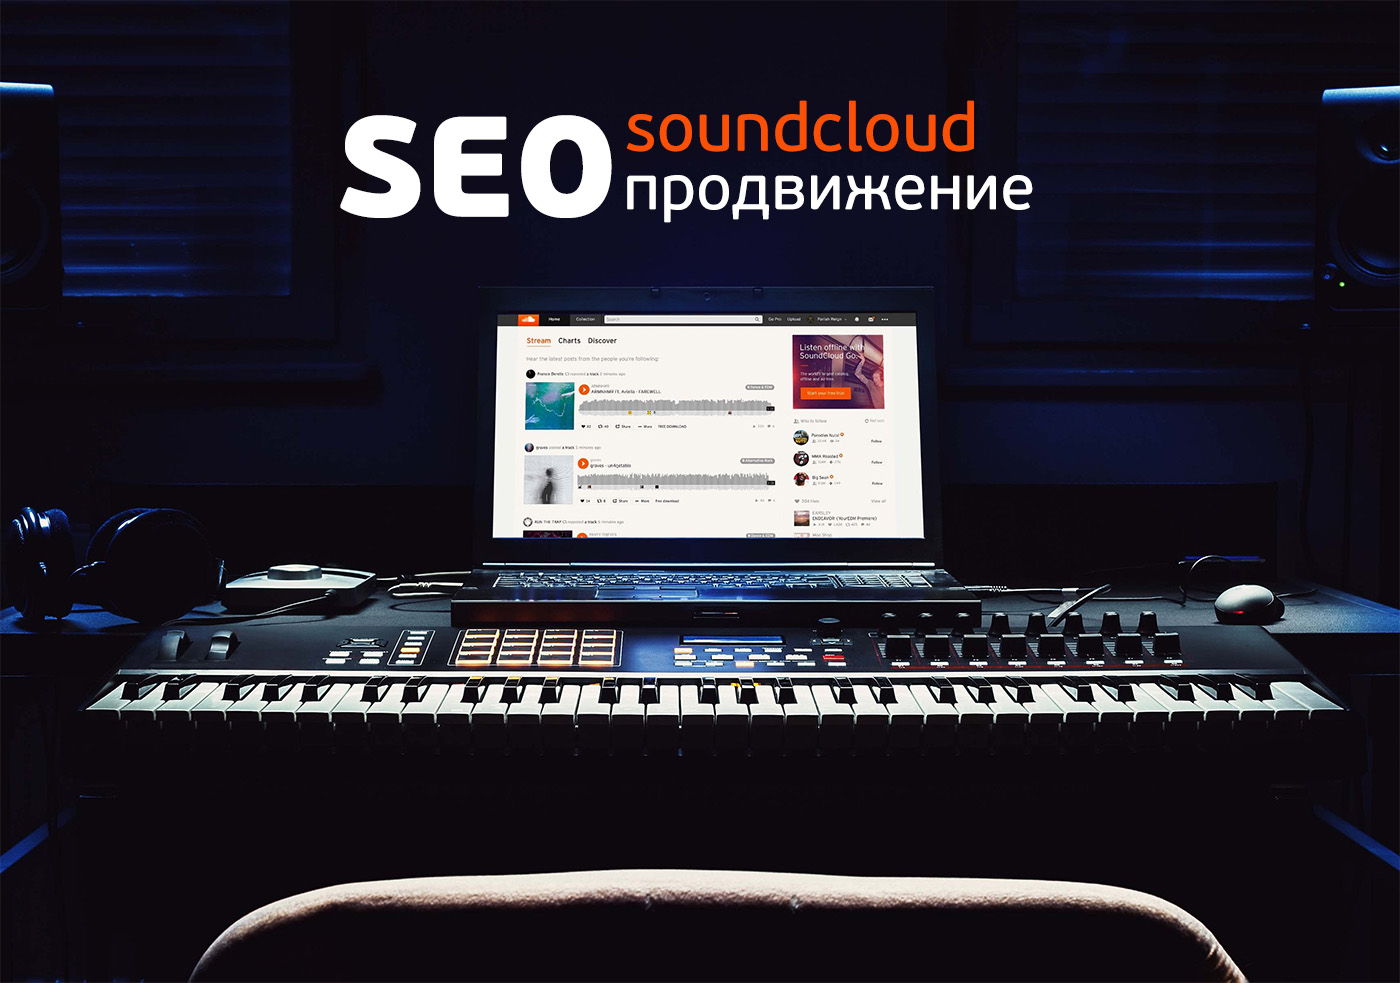 seo-soundcloud